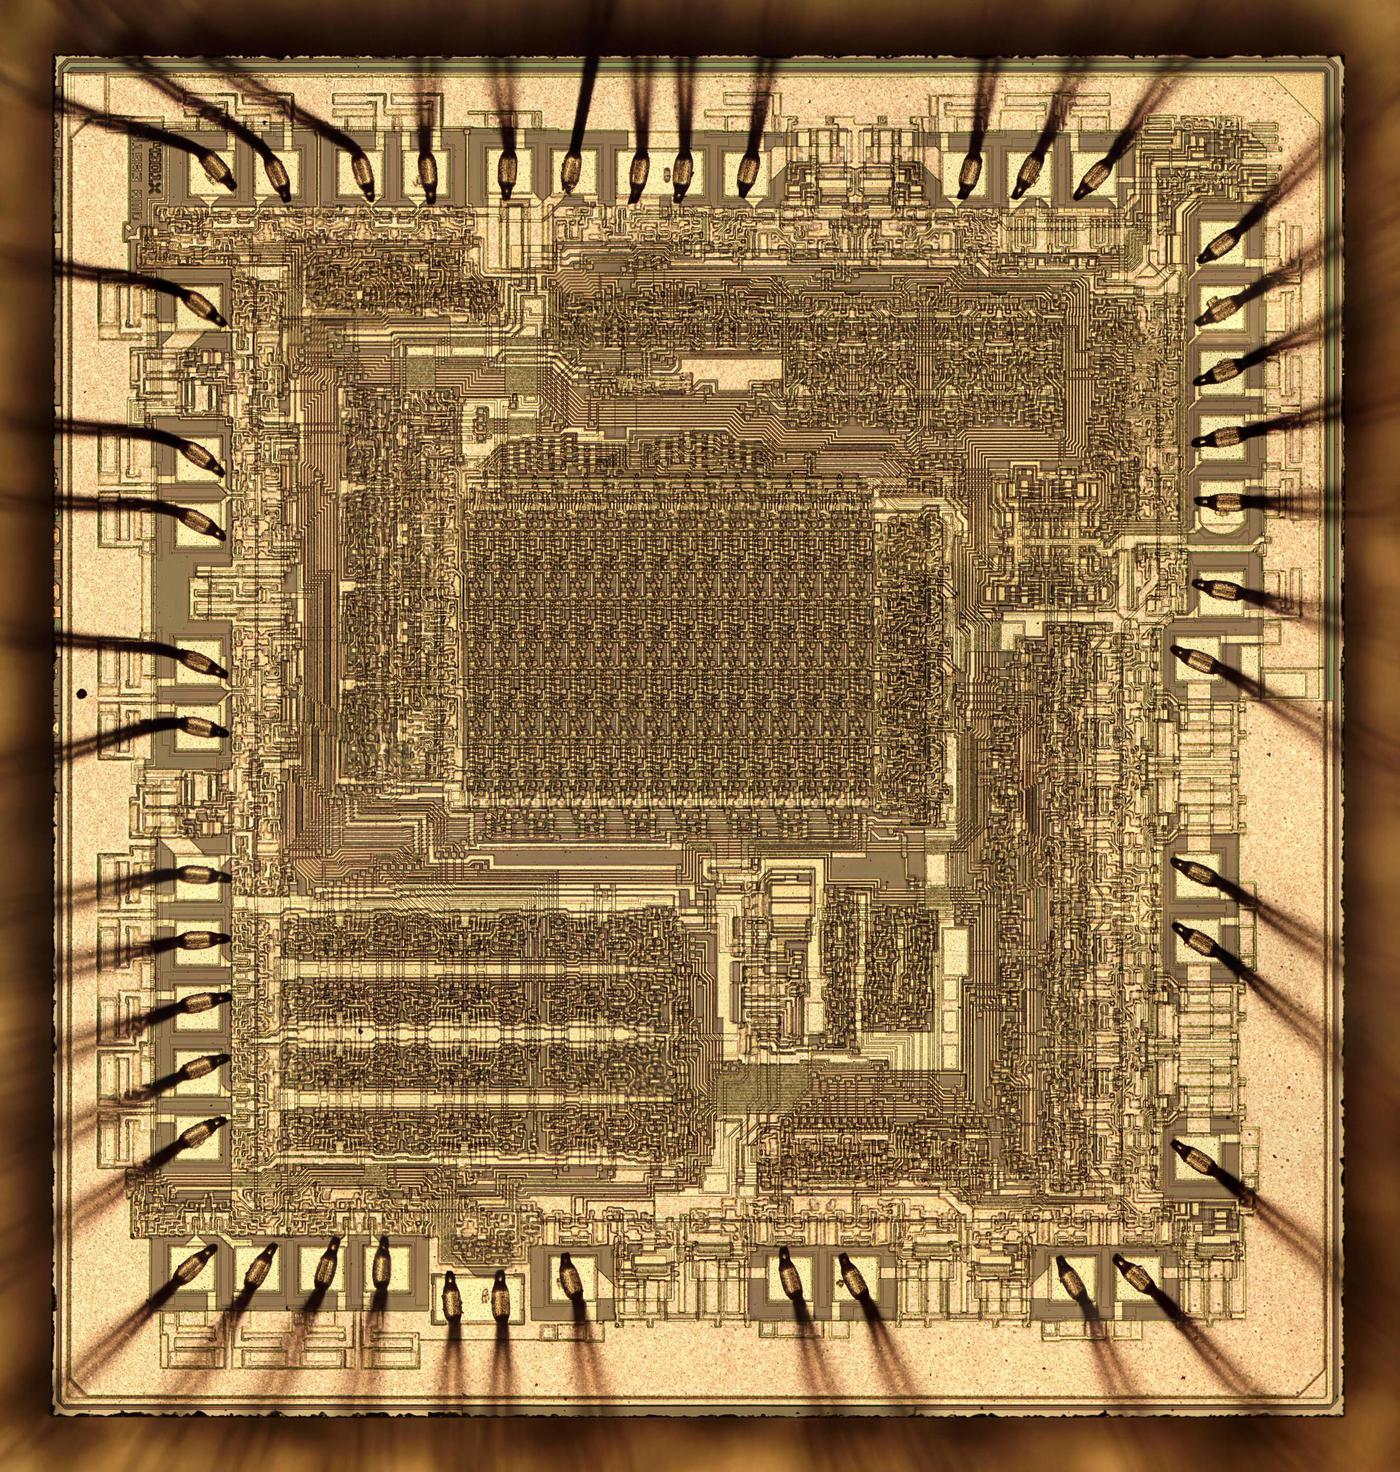 Die photo of the Am2901 chip. This image shows the metal layers of the chip; the silicon is underneath. Around the edges of the die, tiny bond wires connect the chip to the external pins. (Click the photo for a high-res image.)